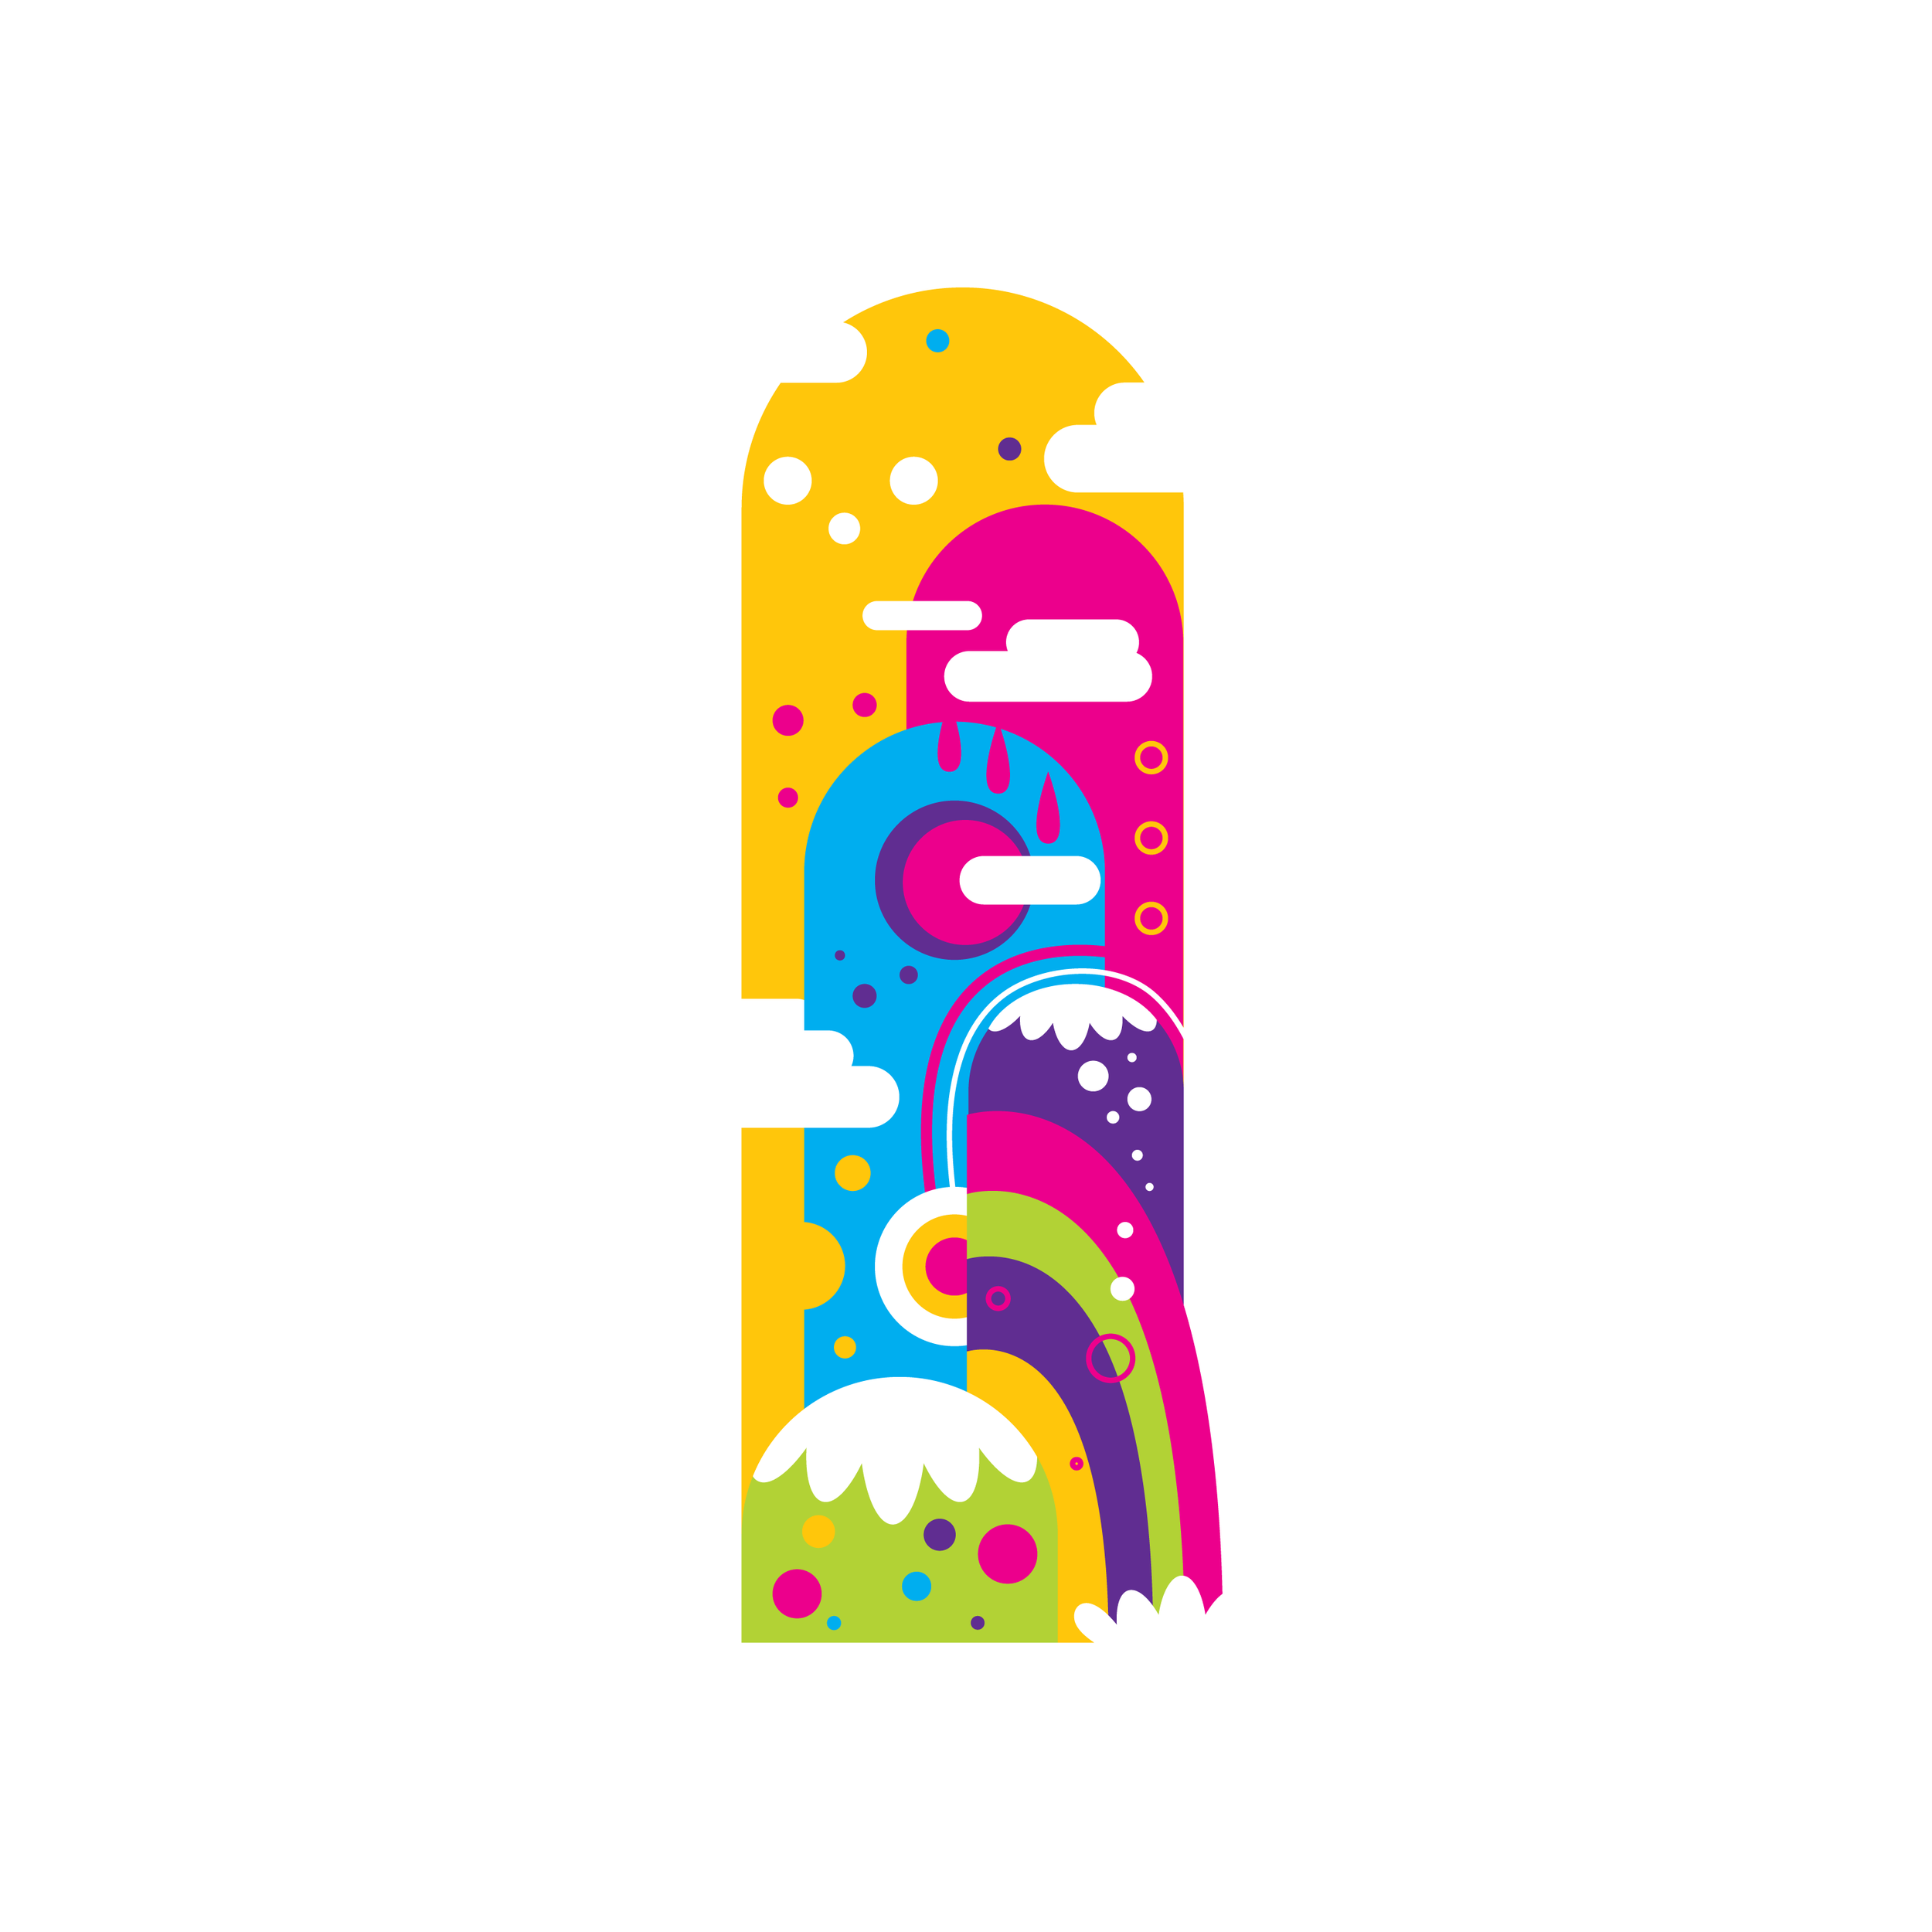 36 Days of Type_V01-12.png